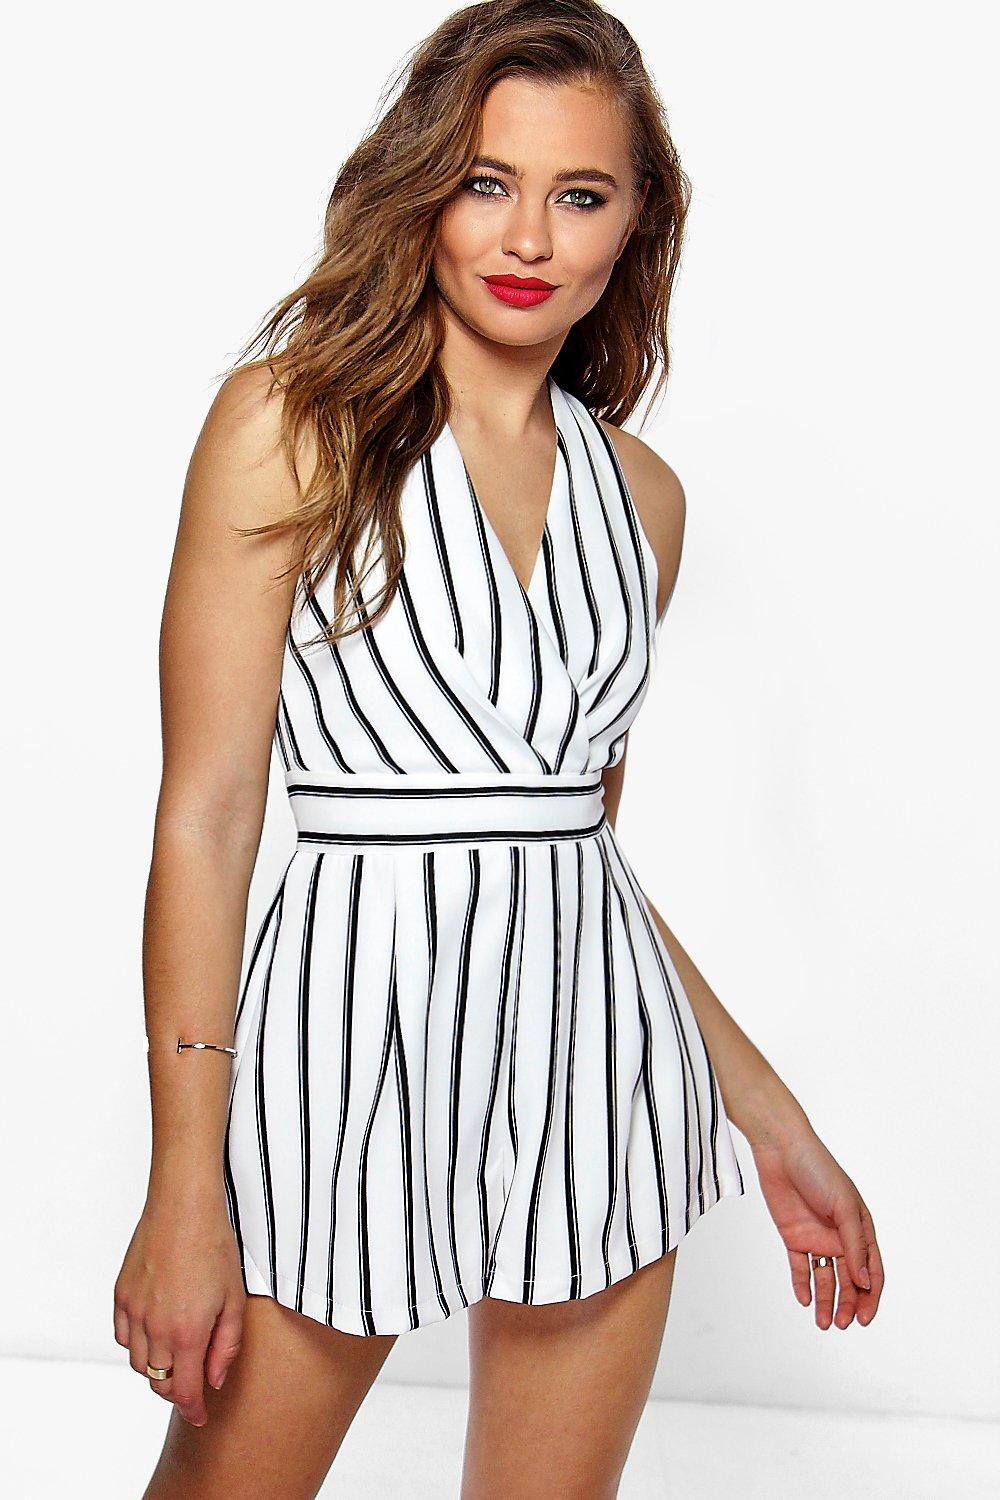 Wrap Over Stripe Playsuit - white